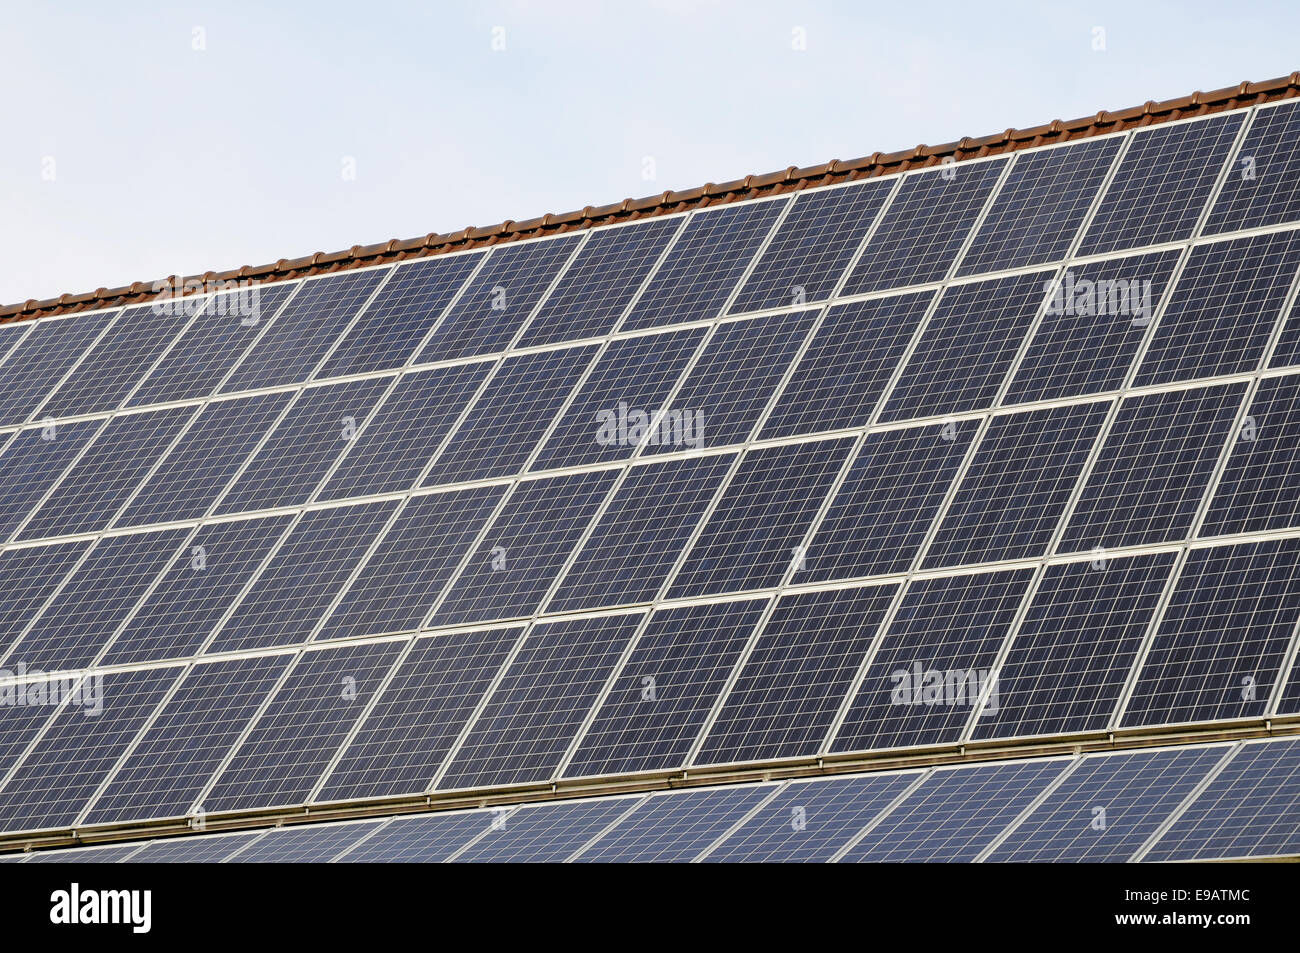 Solar plant, Muensterland area, Germany - Stock Image